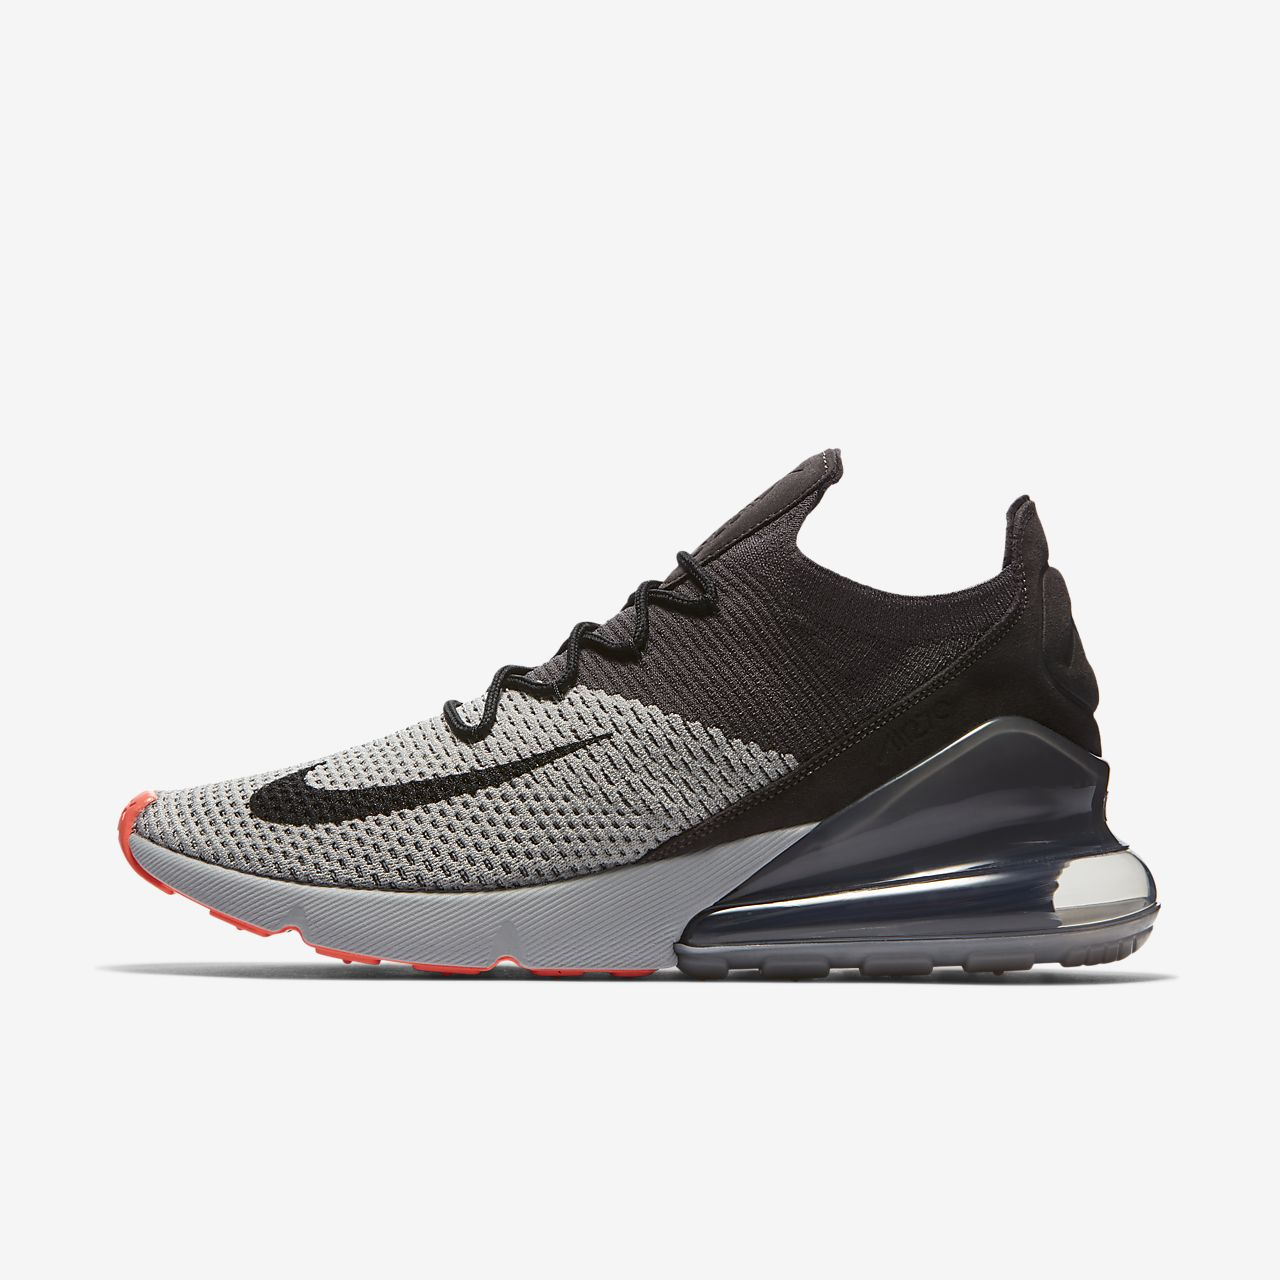 c5b5b21e3231 Nike Air Max 270 Flyknit Men s Shoe. Nike.com GB